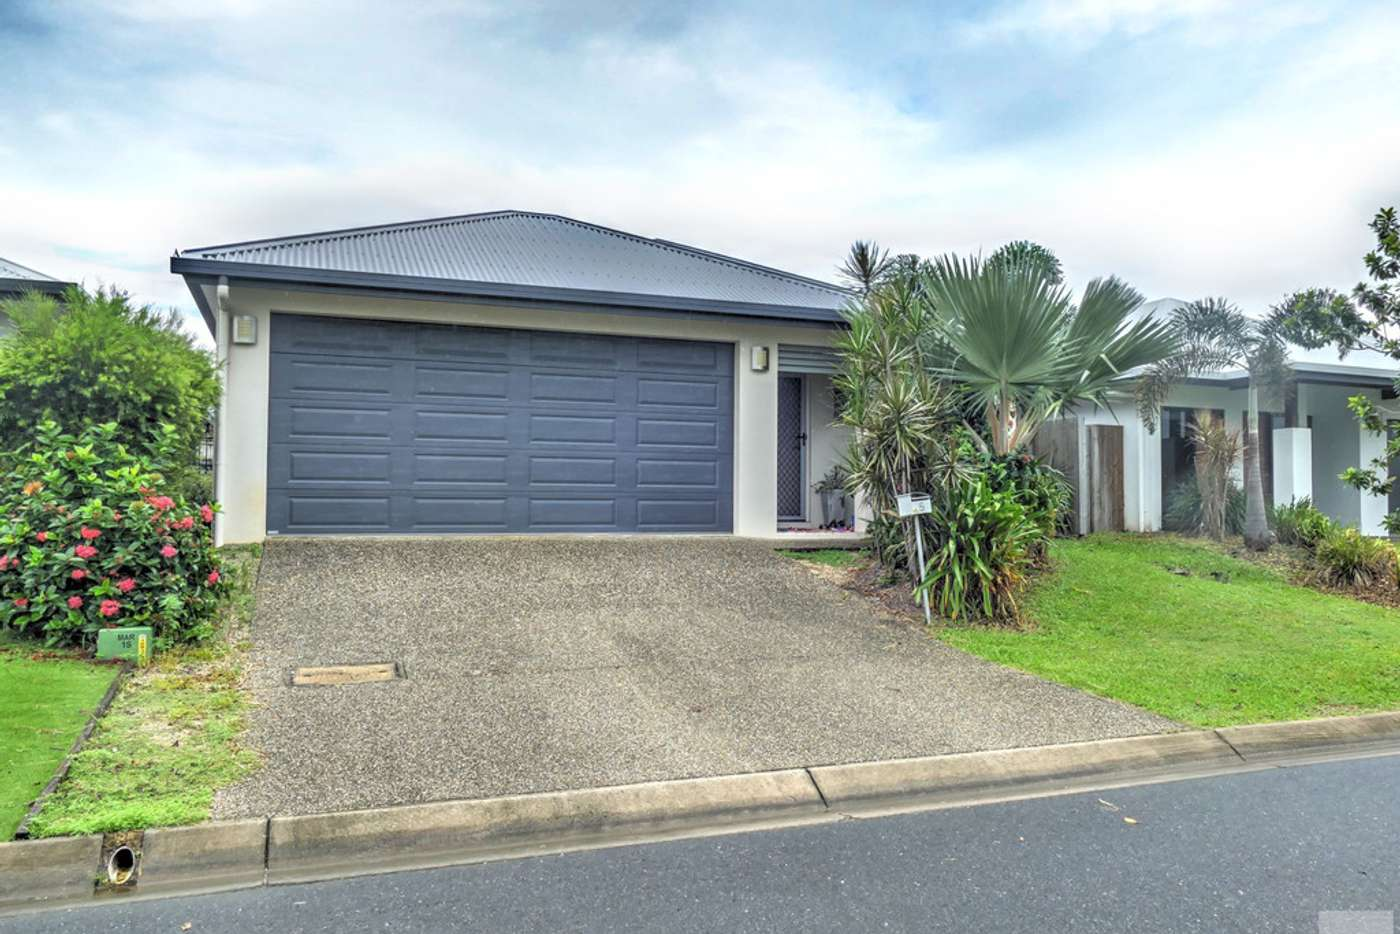 Main view of Homely house listing, 5 Marrabah Avenue, Smithfield QLD 4878